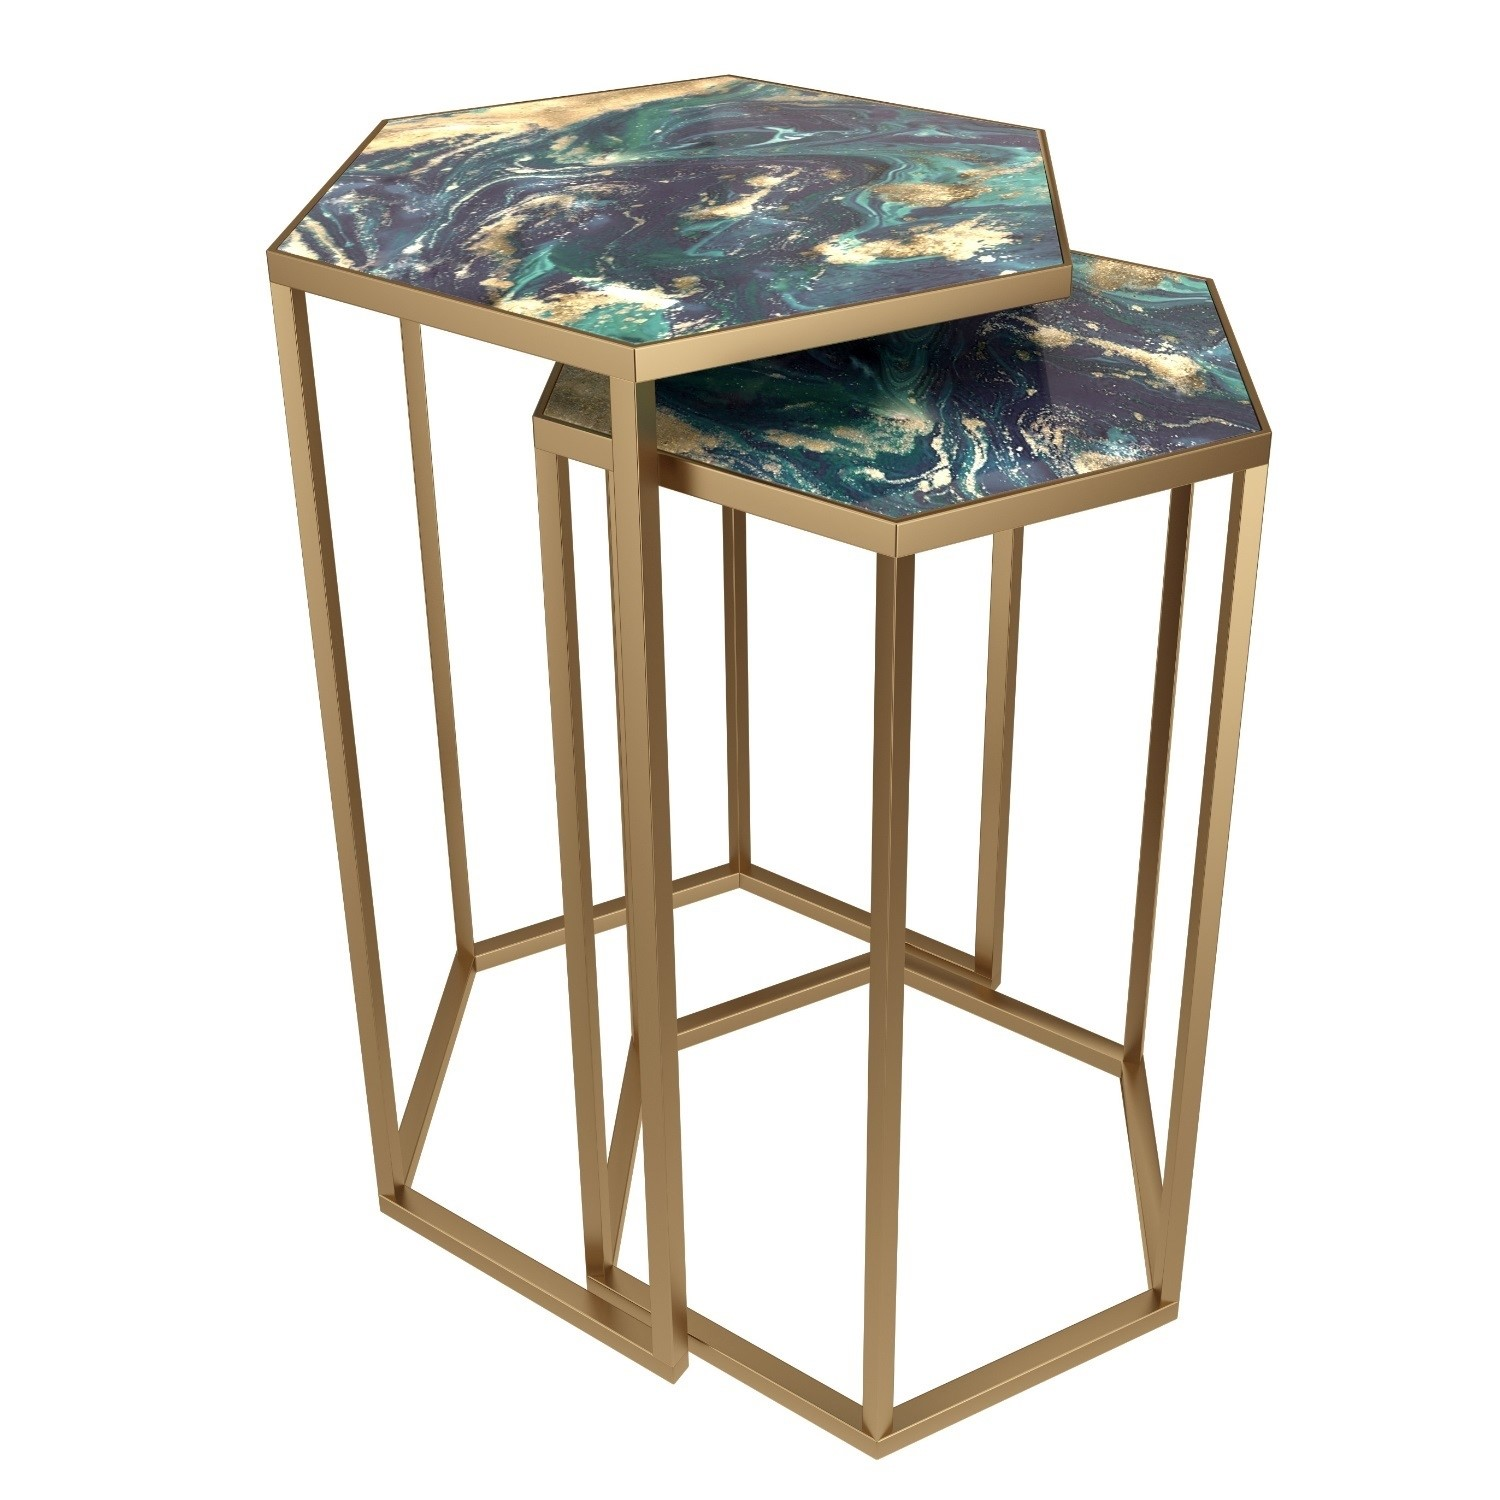 Nest of Tables with Blue Faux Marble Top and Gold Metal Base